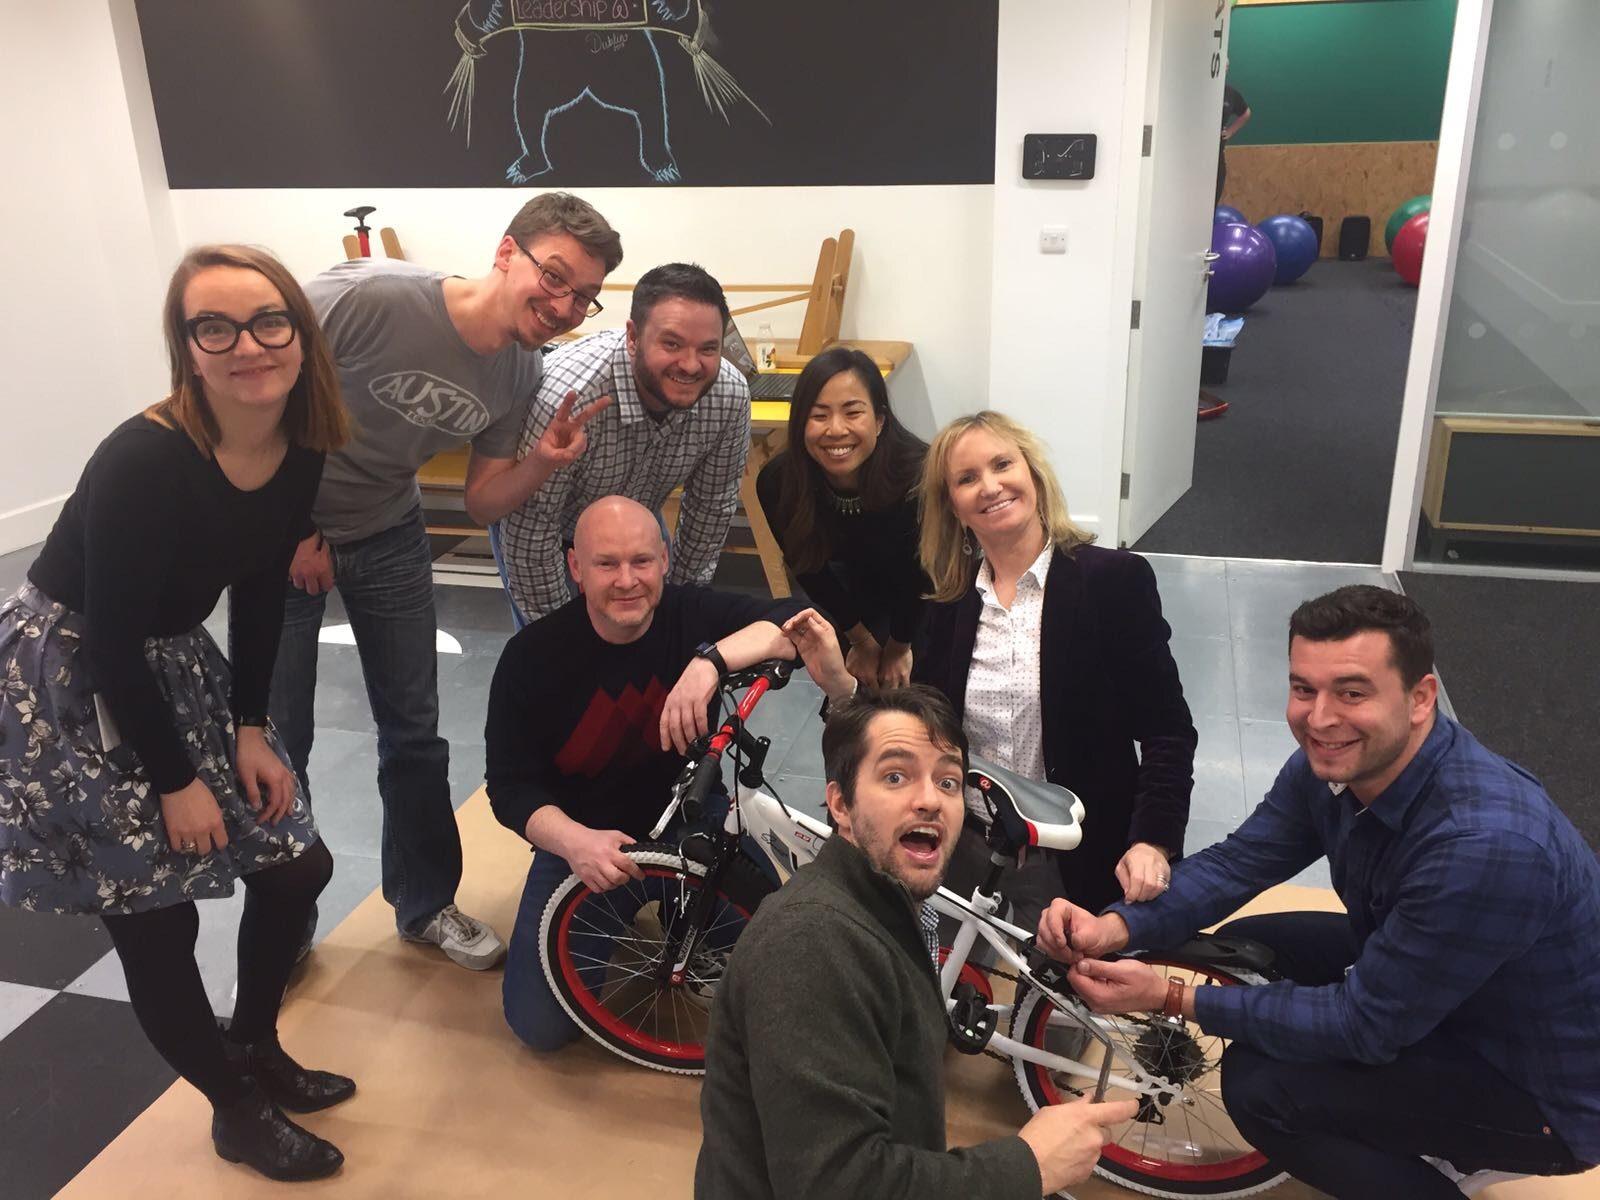 Teams smile for a photo while in the middle of putting their bike together during Orangeworks' Charity Bike Build.